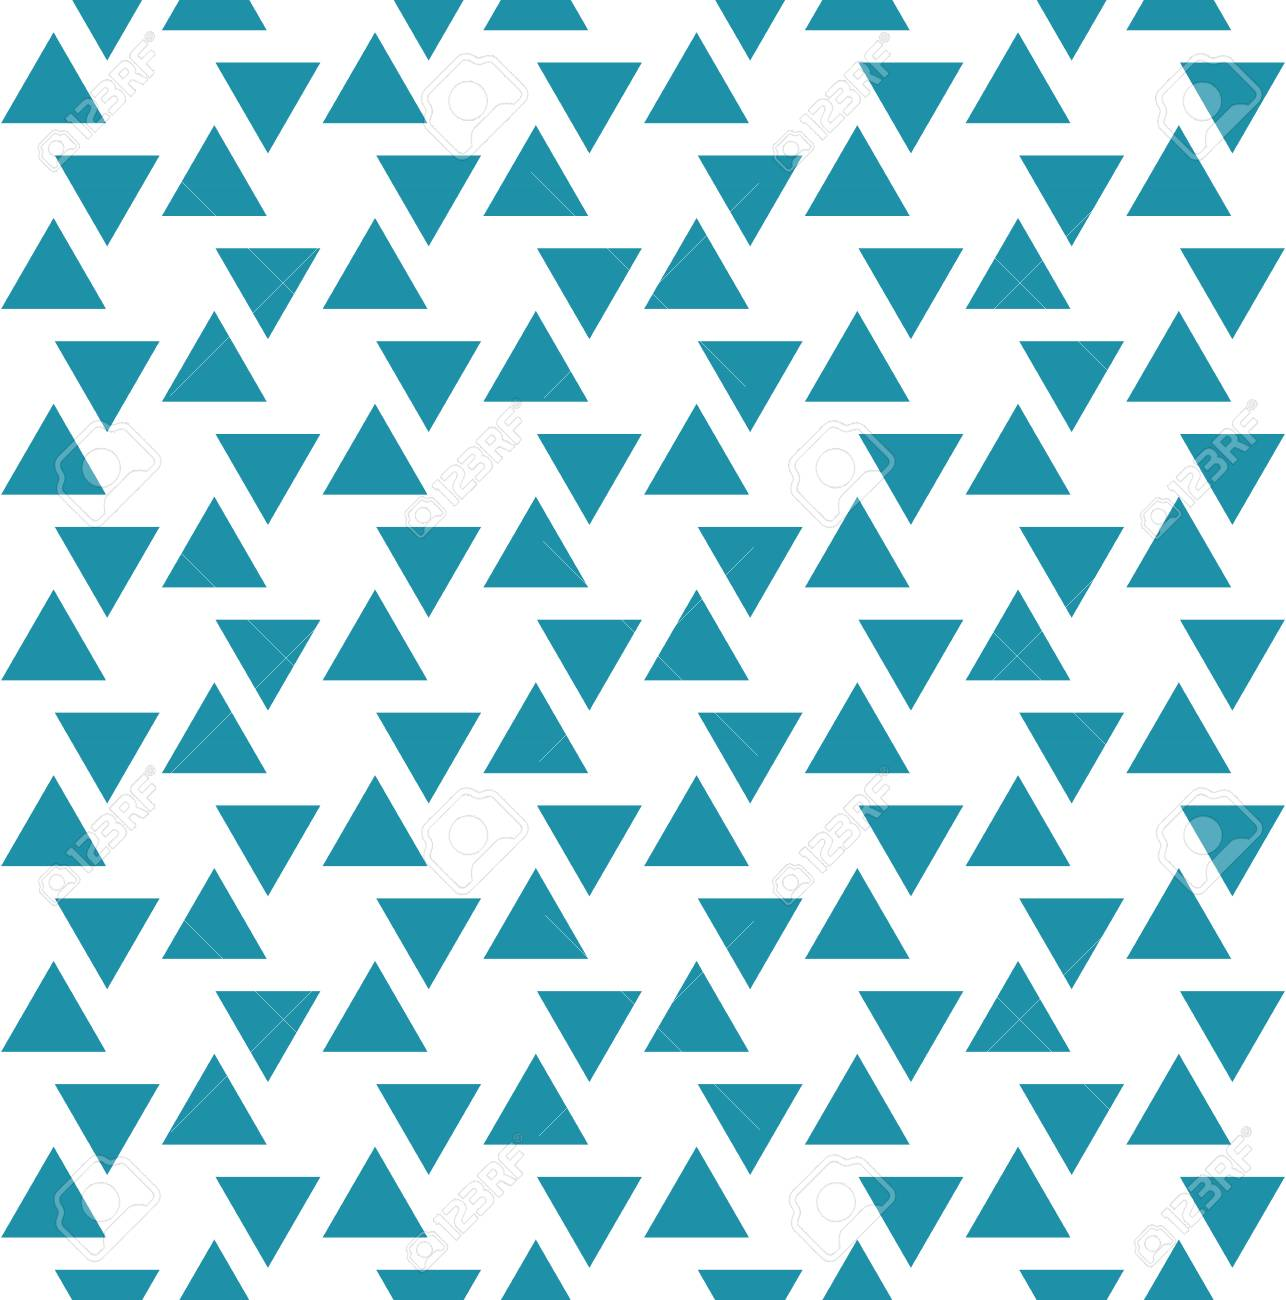 seamless geometric triangle grid pattern royalty free cliparts